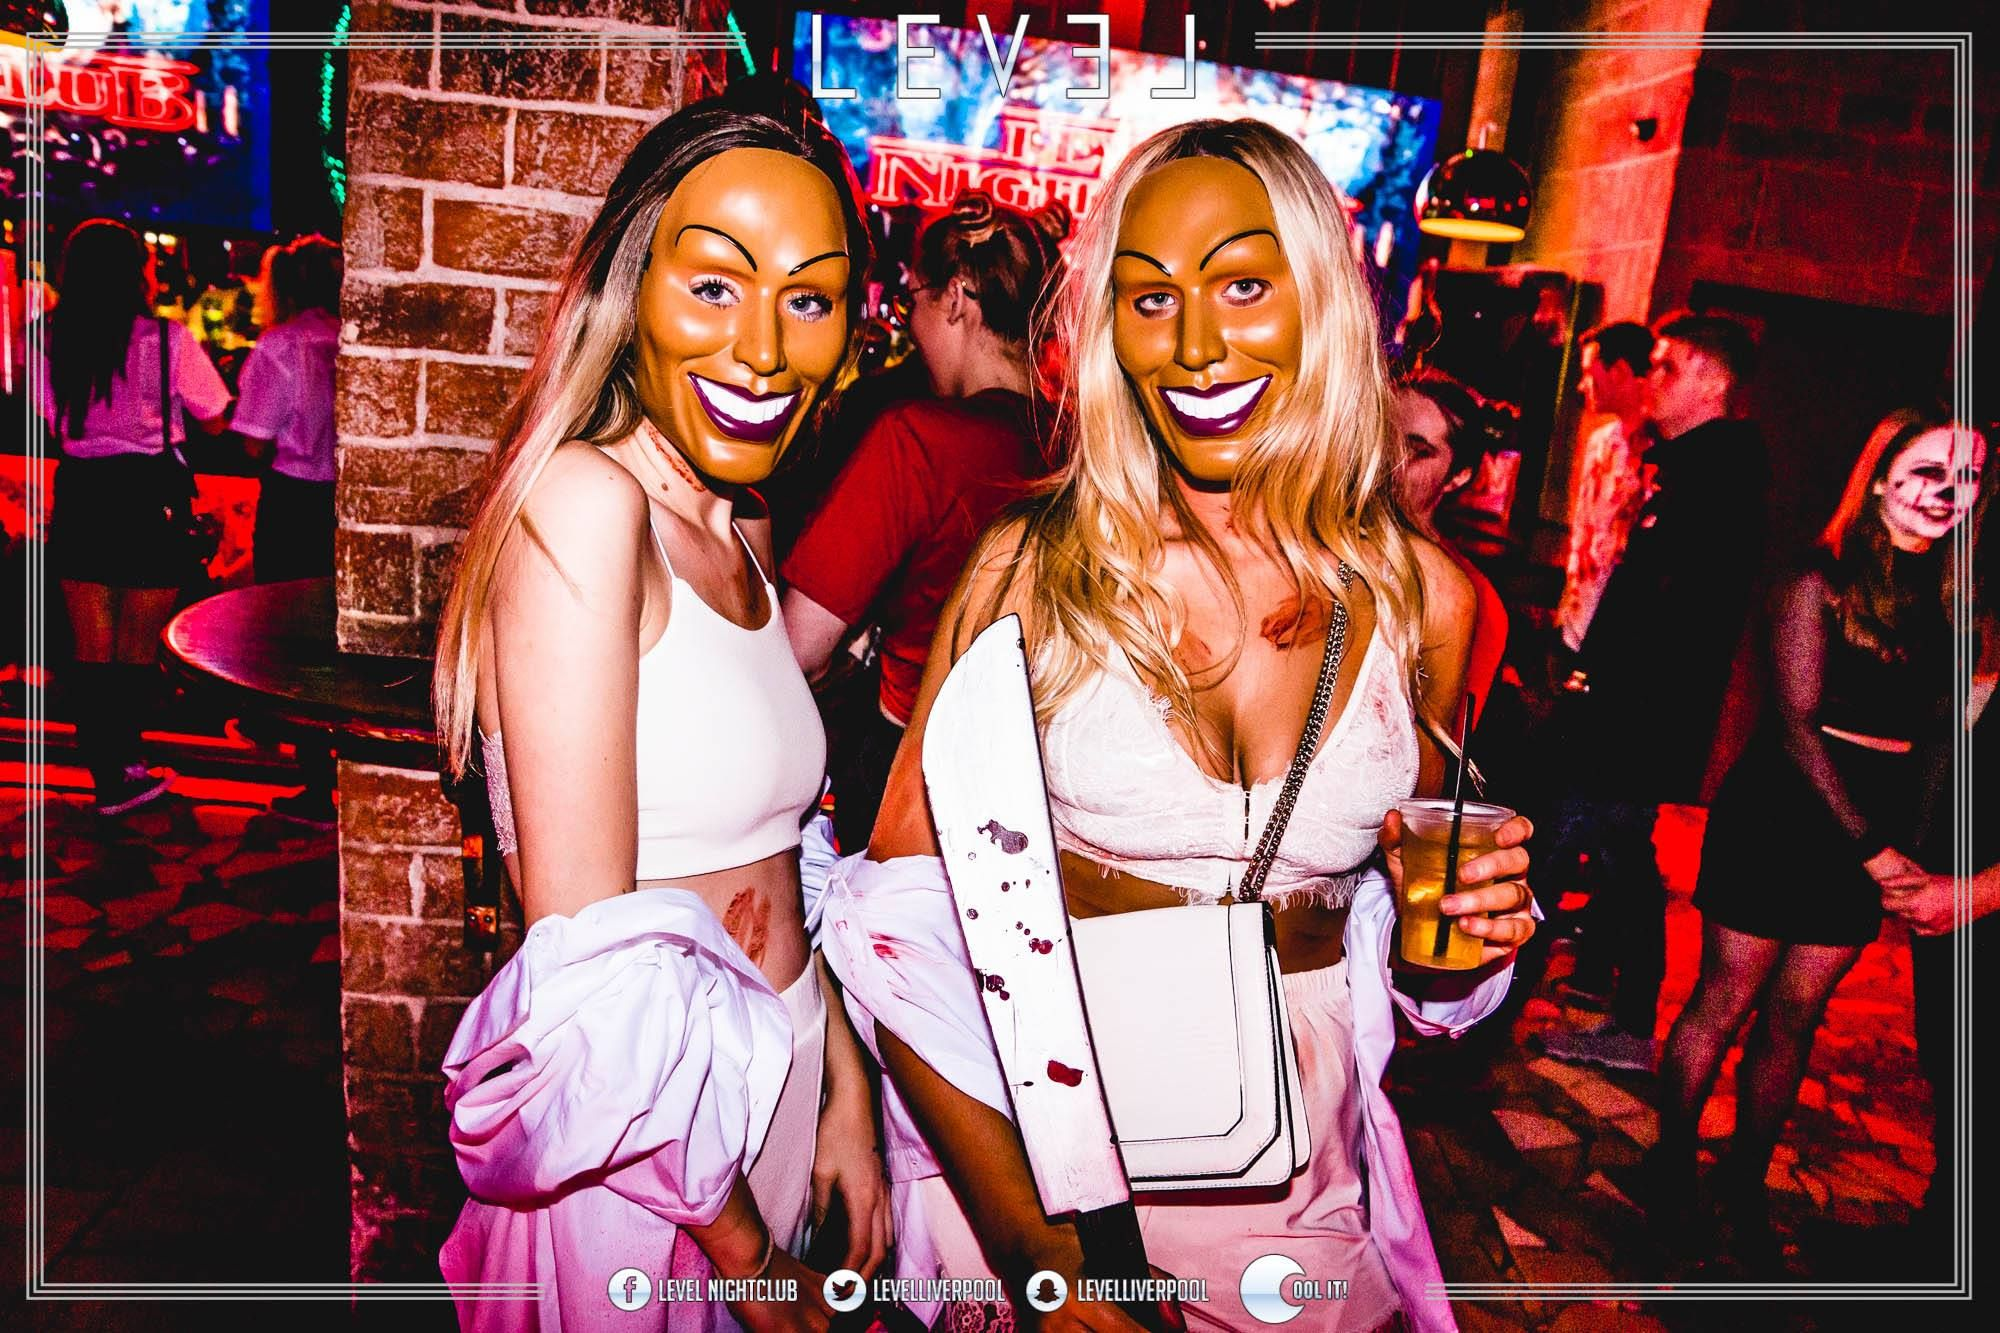 Image may contain: Night Life, Night Club, Club, Human, Person, People